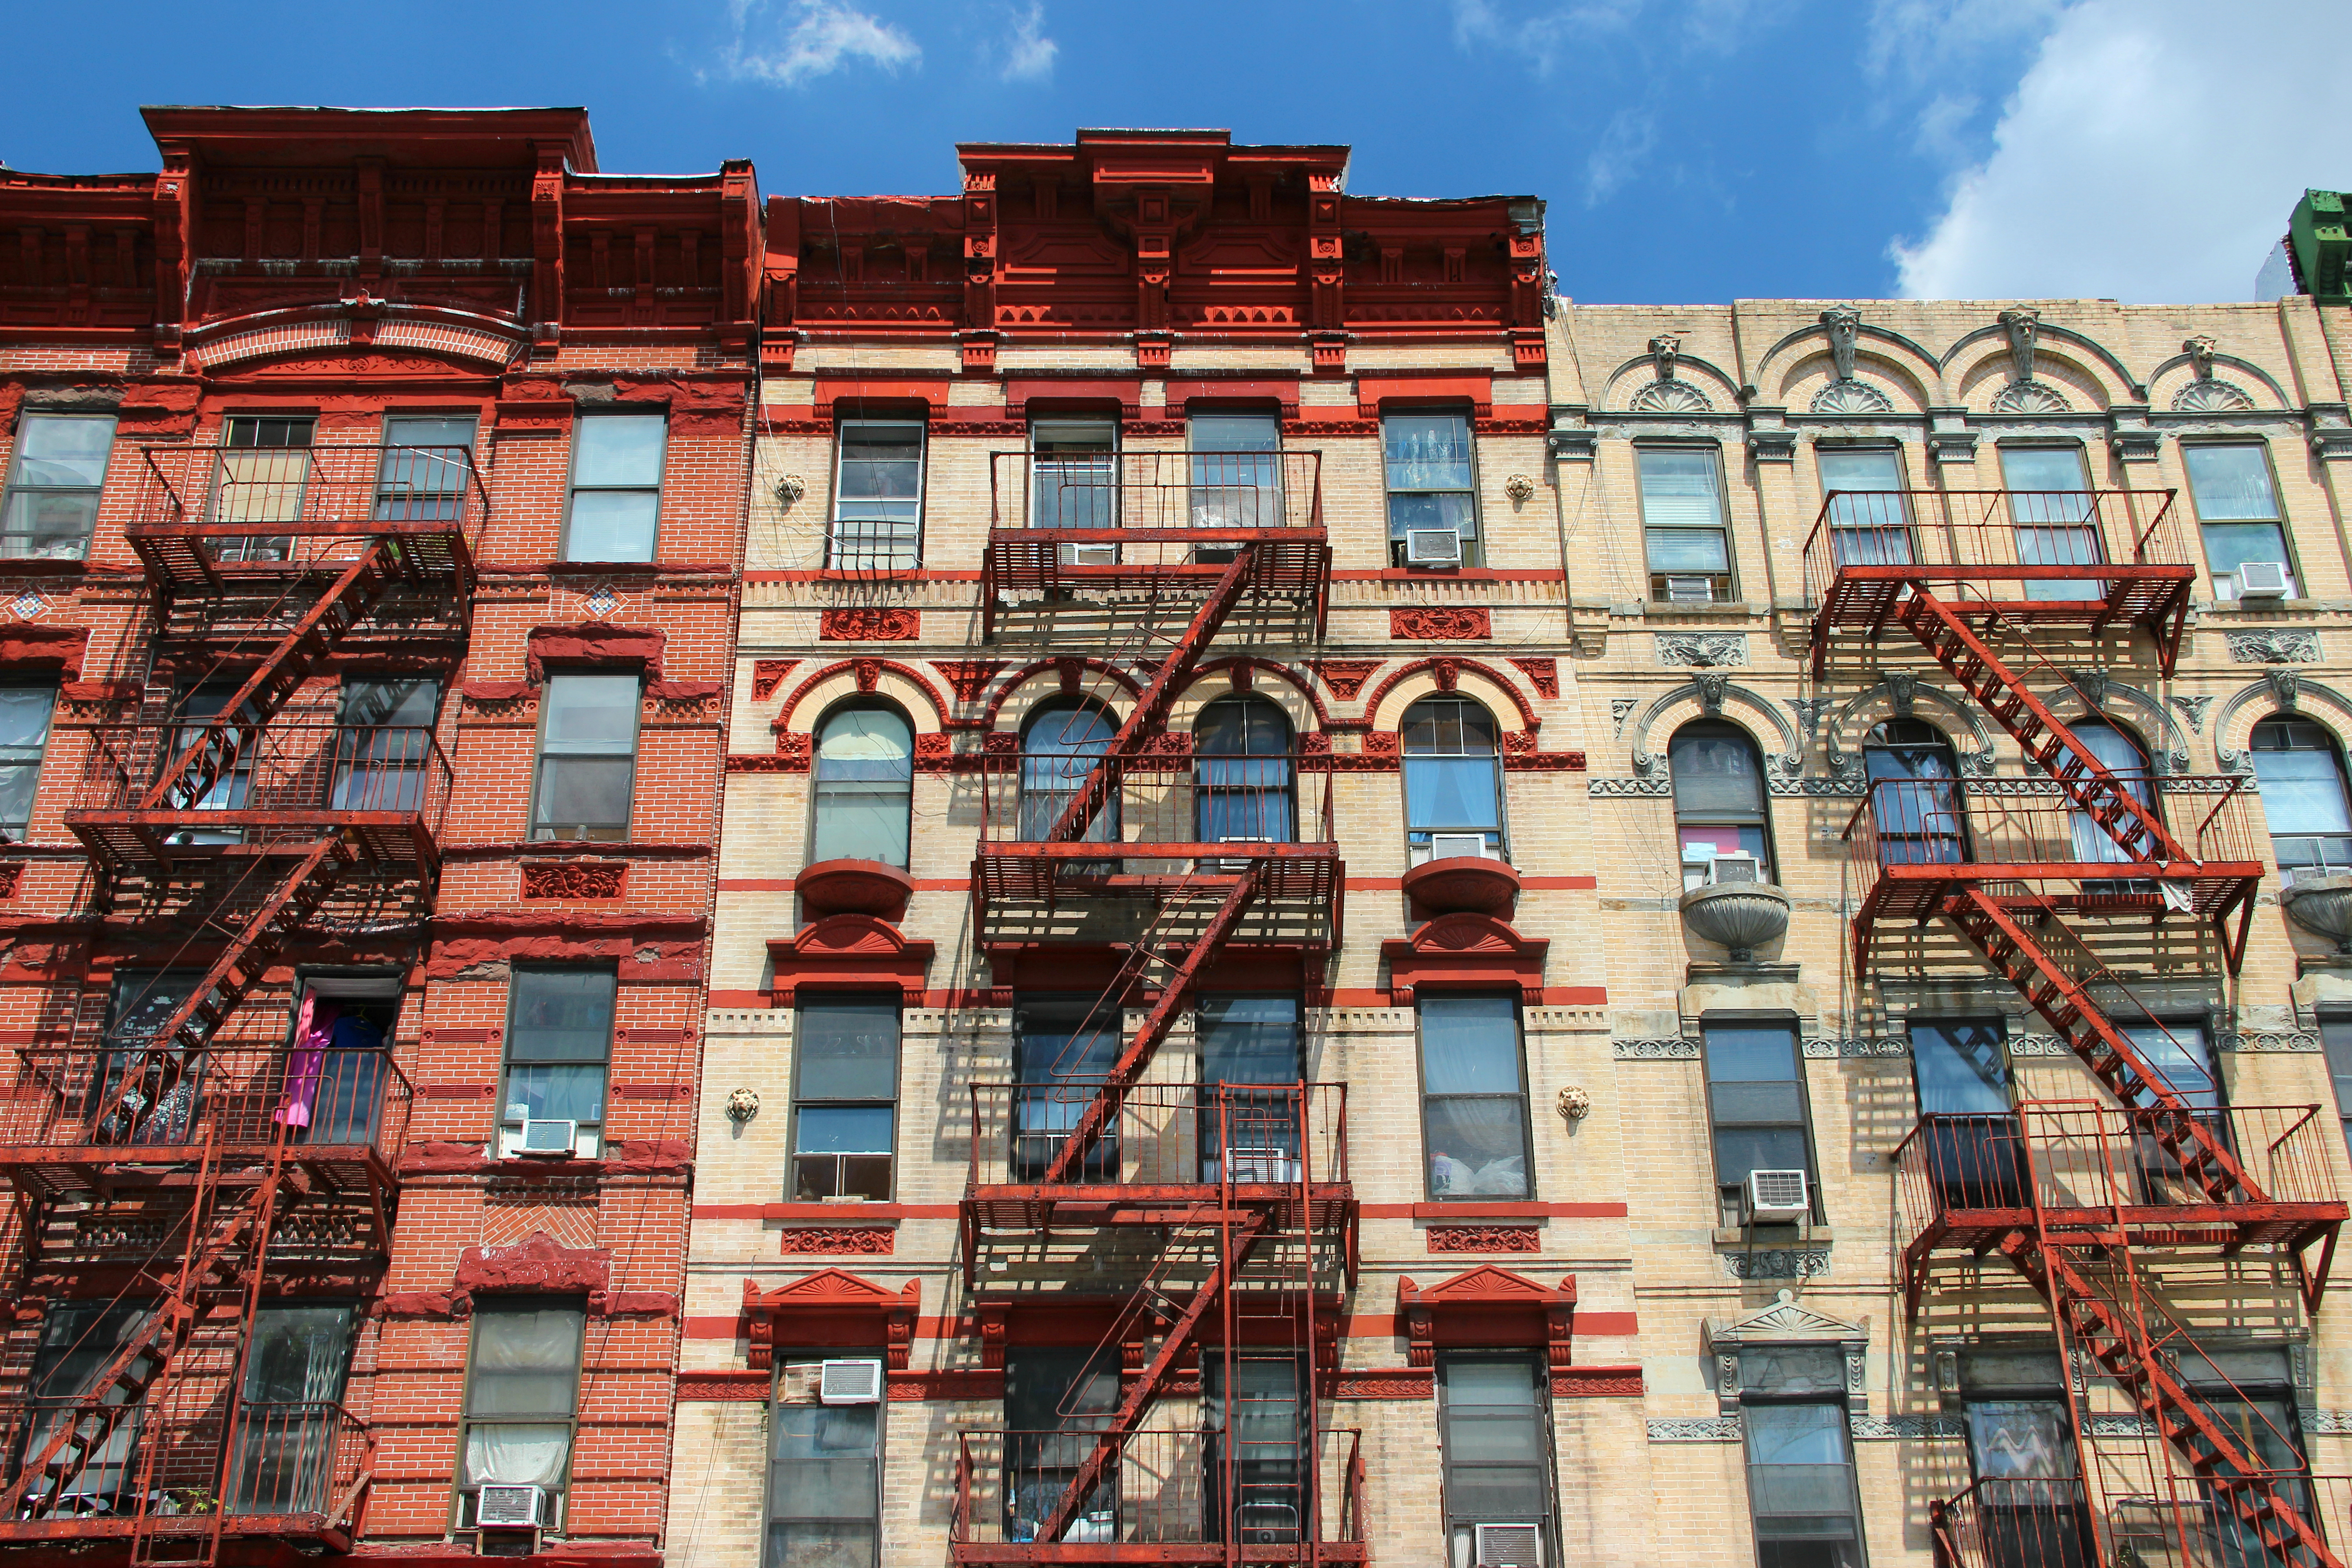 Nearly half of New Yorkers can't afford to live in NYC: poll